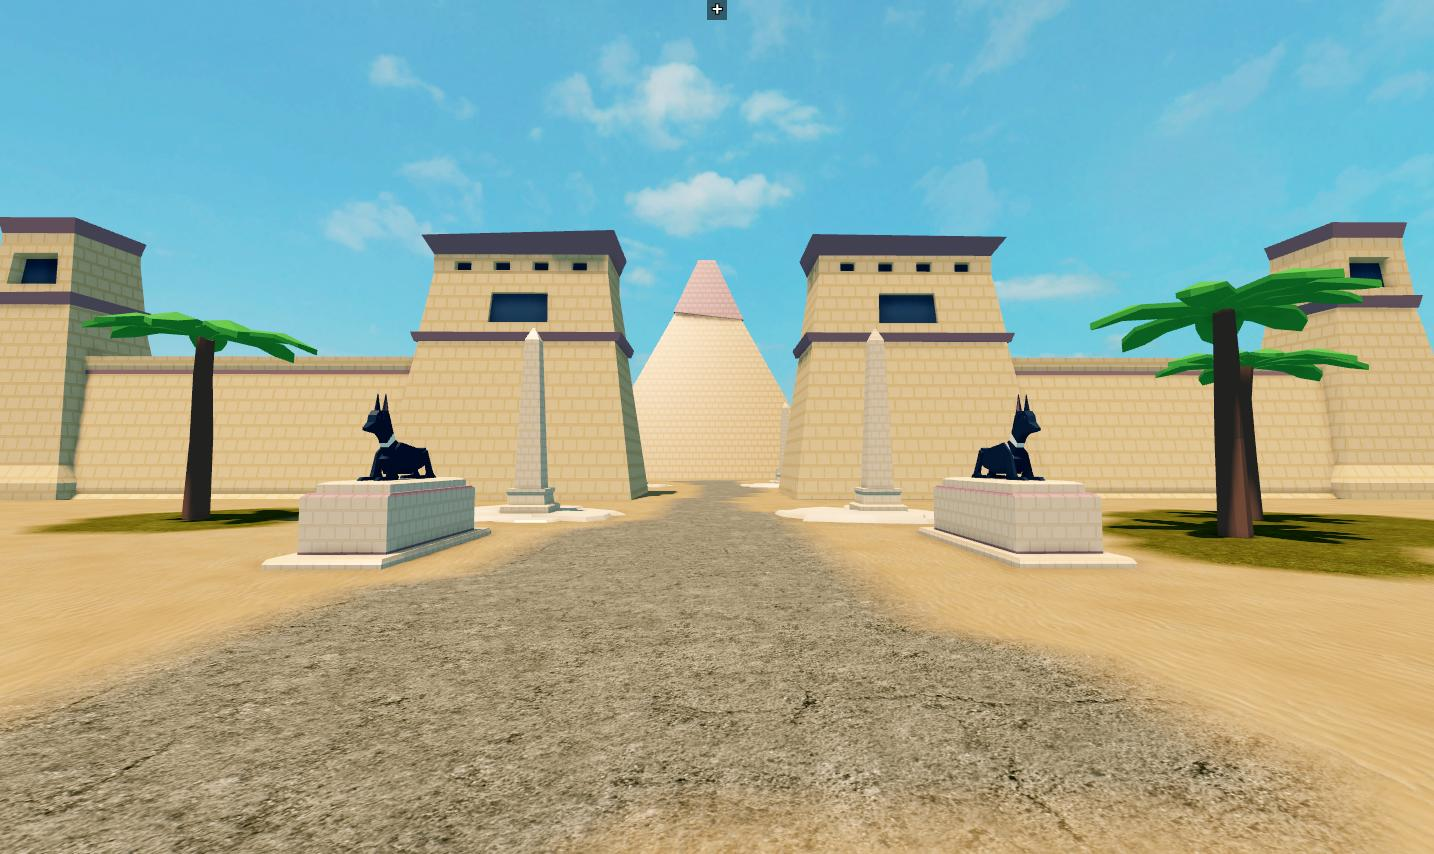 Jandel Roblox On Twitter Time Travel Dungeons Game Page Jandel Roblox On Twitter Coming This Friday To Time Travel Adventures Alwaystrustbob1 Roblox Robloxdev